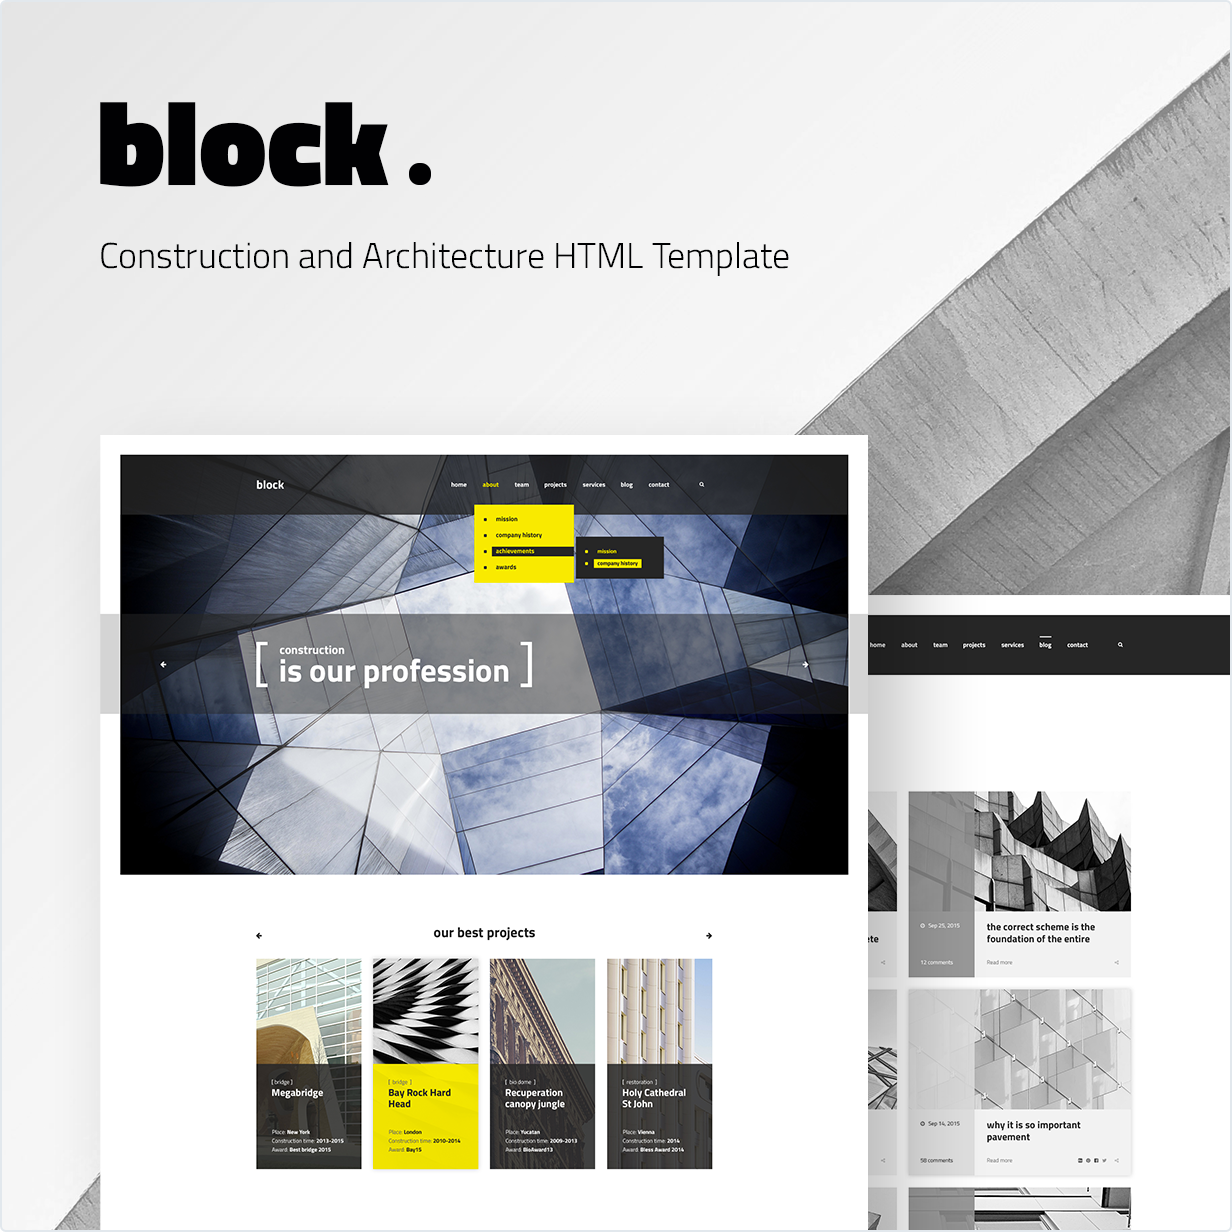 Construction and Architecture HTML Template Block